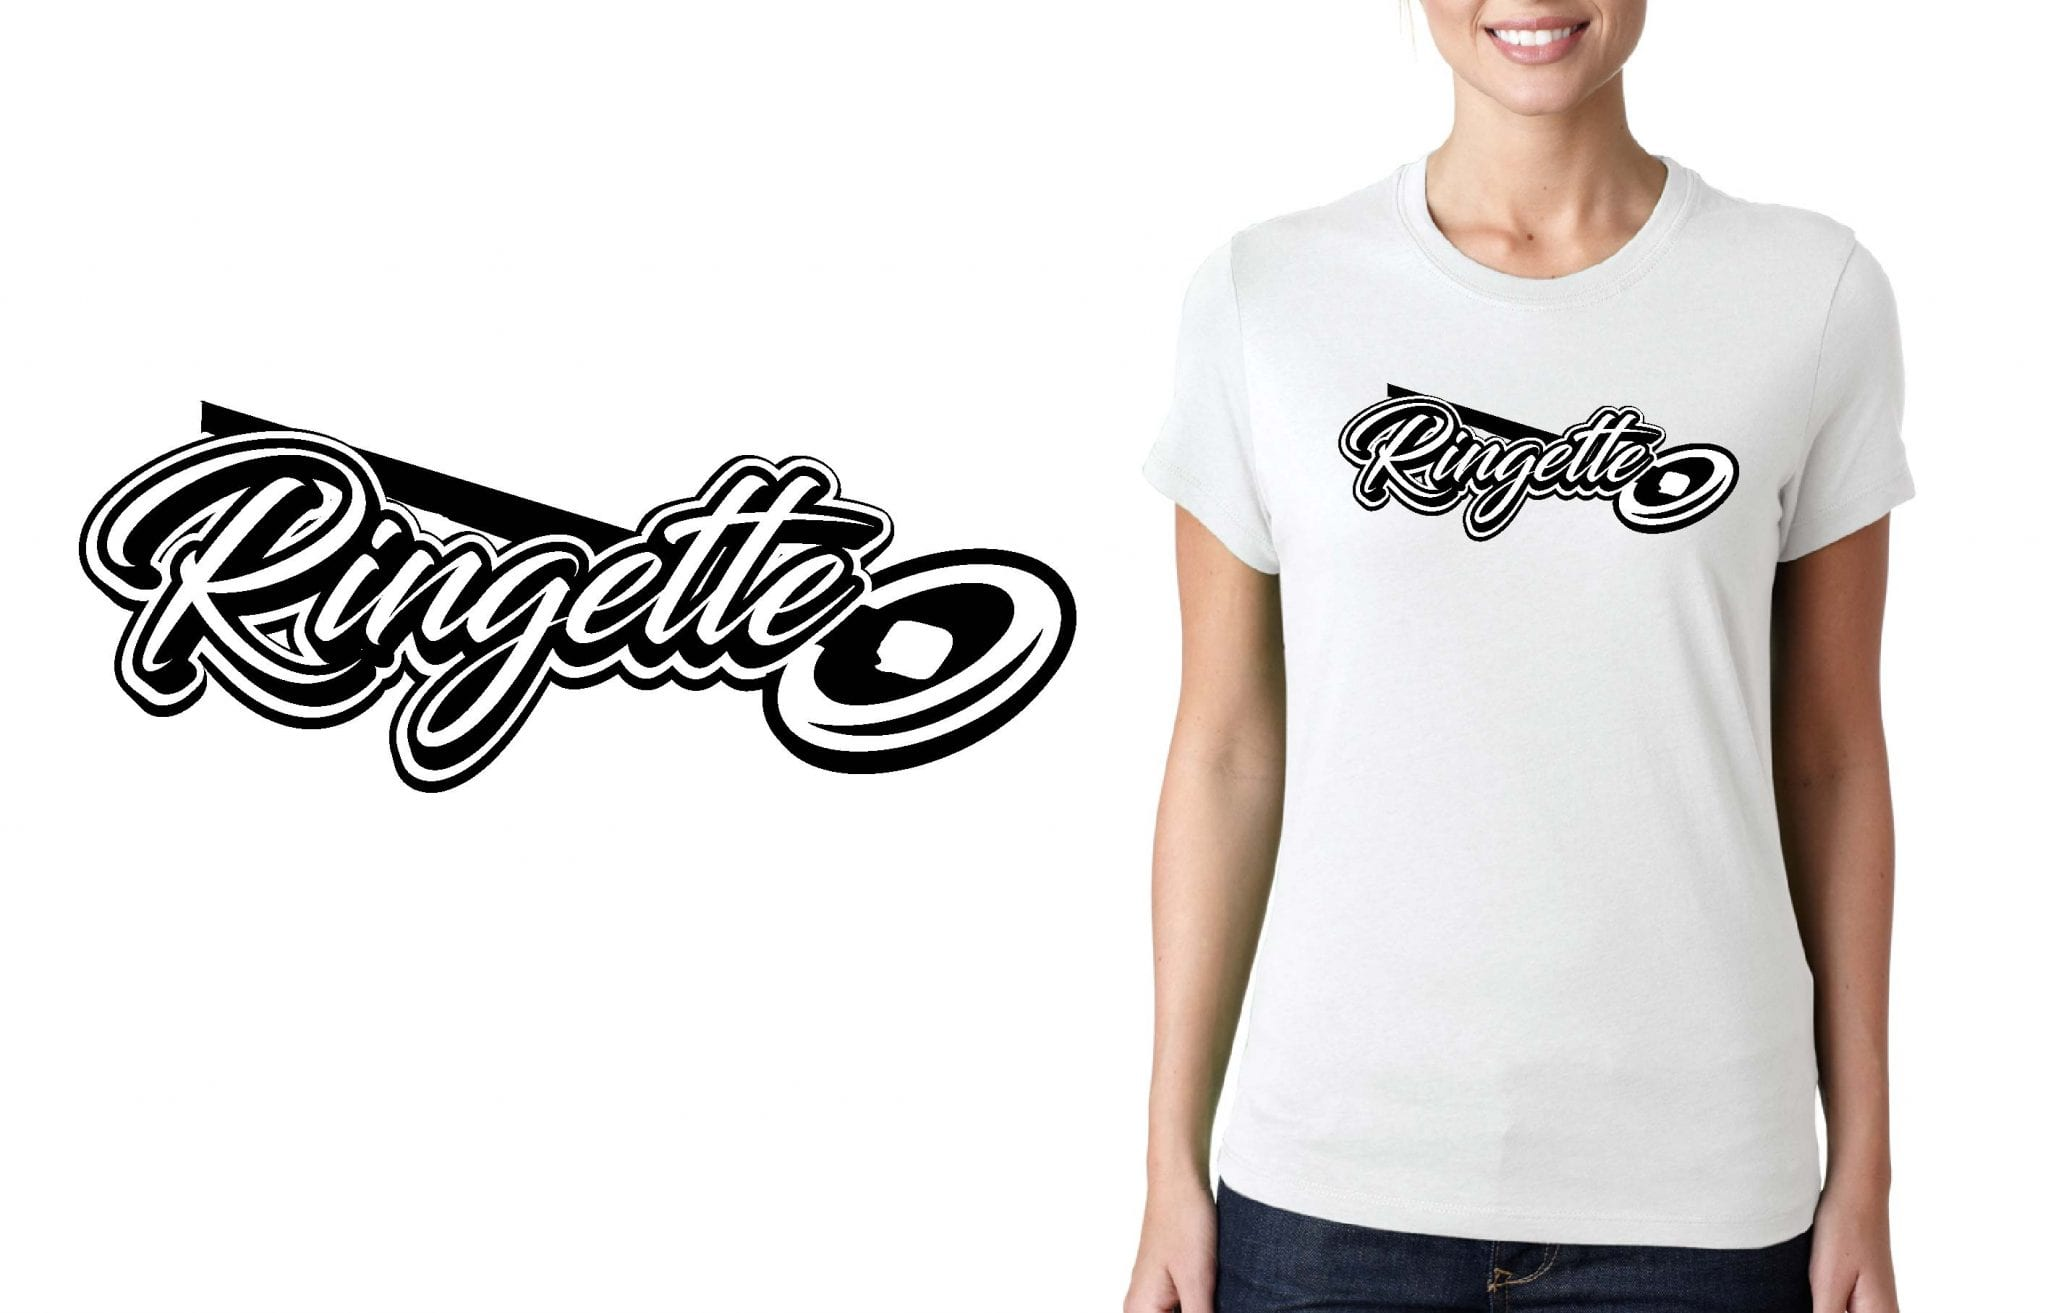 RINGETTE LOGO for T-SHIRT UrArtStudio